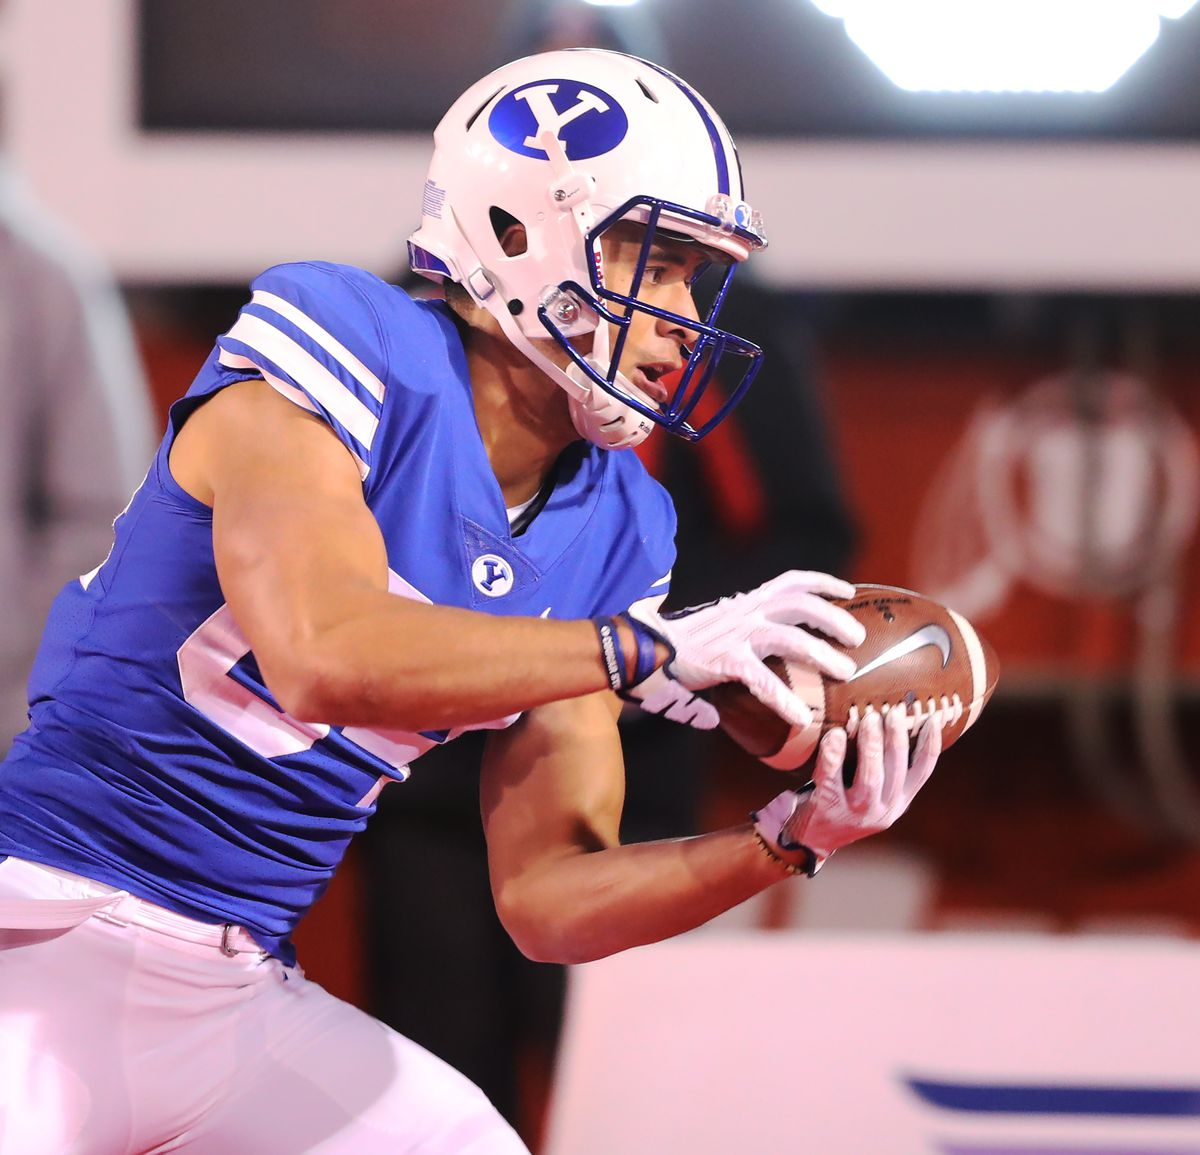 BYU wide receiver Neil Pau'u (84) makes a catch going out of the end zone for a score as BYU and Utah play at Rice-Eccles Stadium in Salt Lake City on Saturday, Nov. 24, 2018.